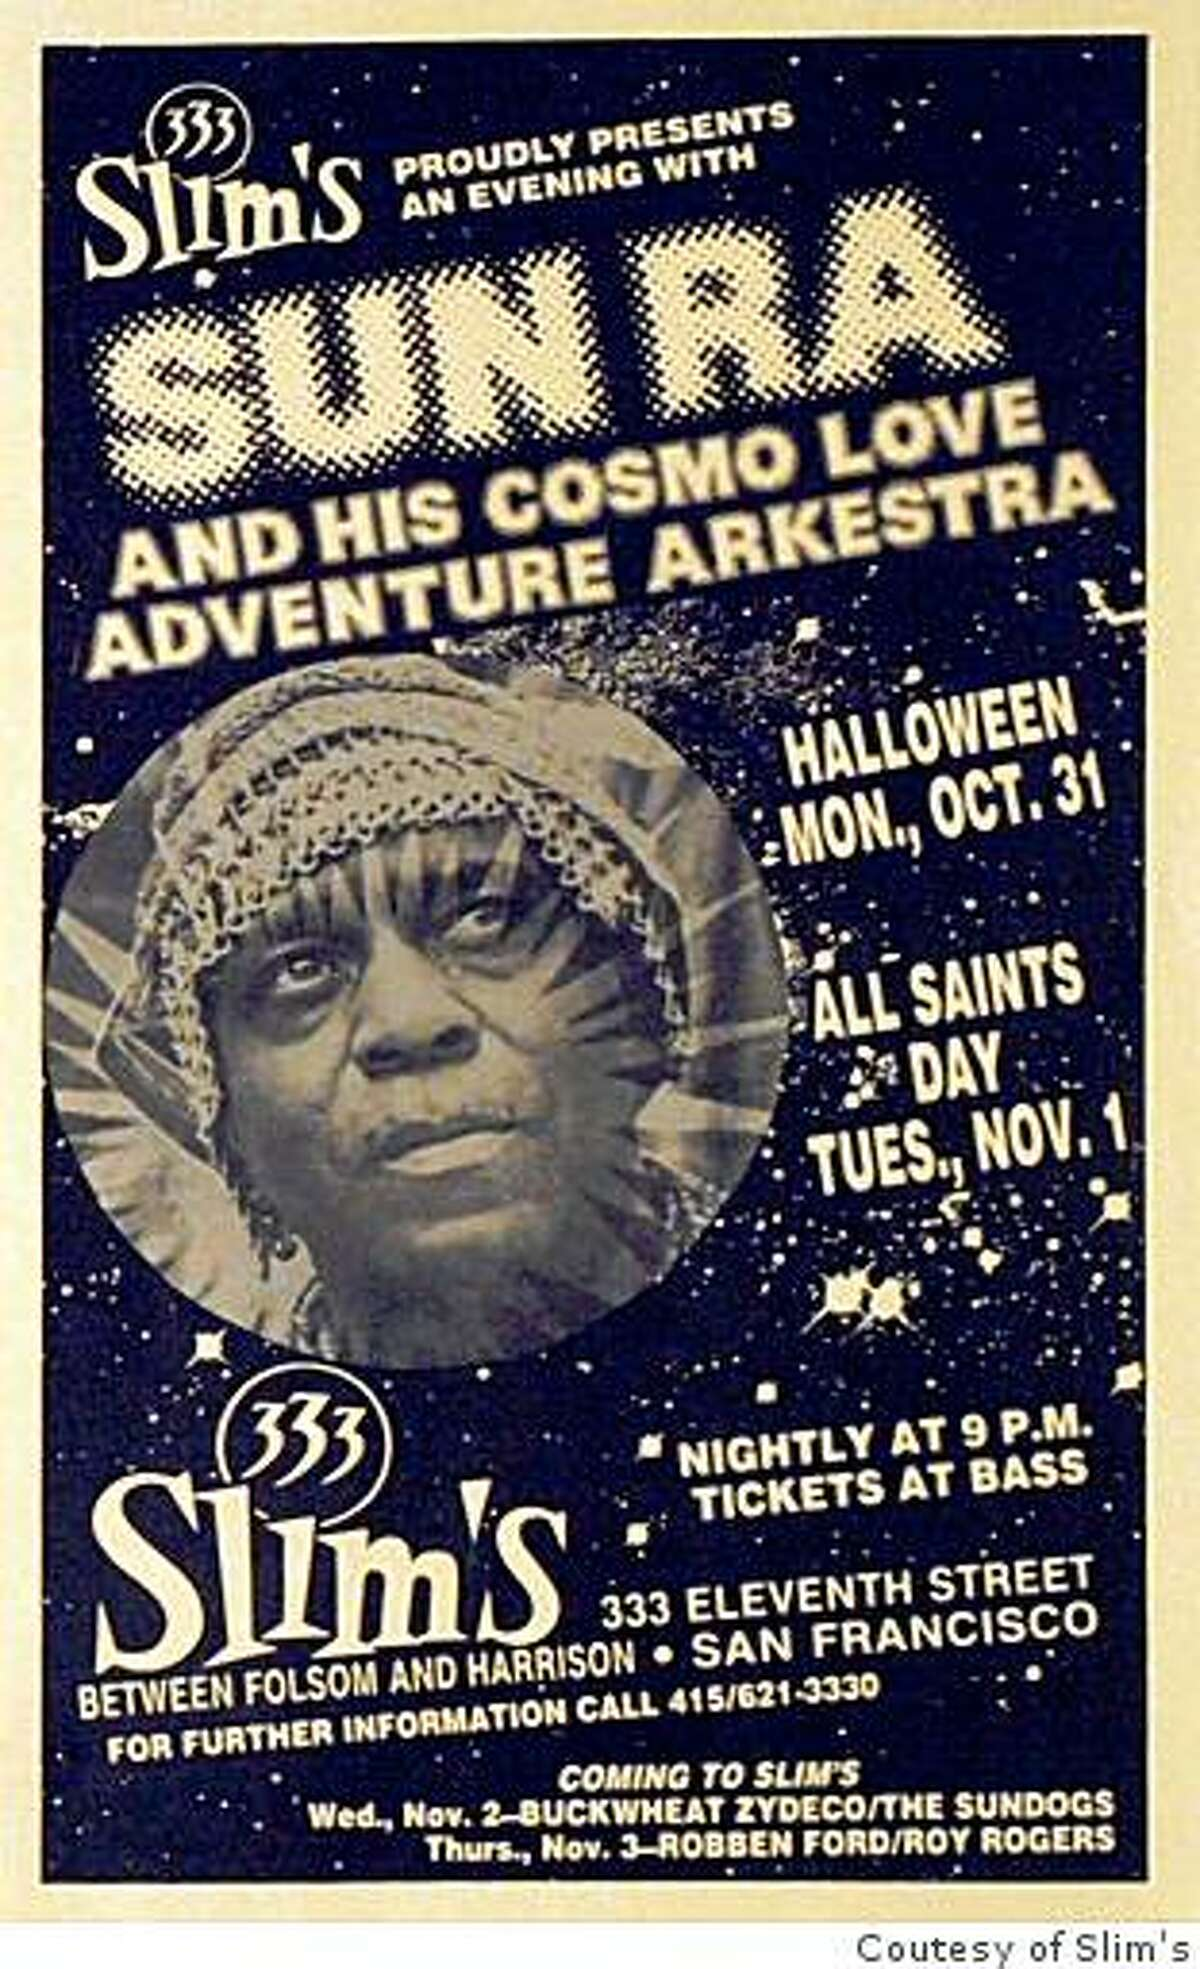 A poster for a Sun Ra concert at Slim's nightclub in San Francisco.